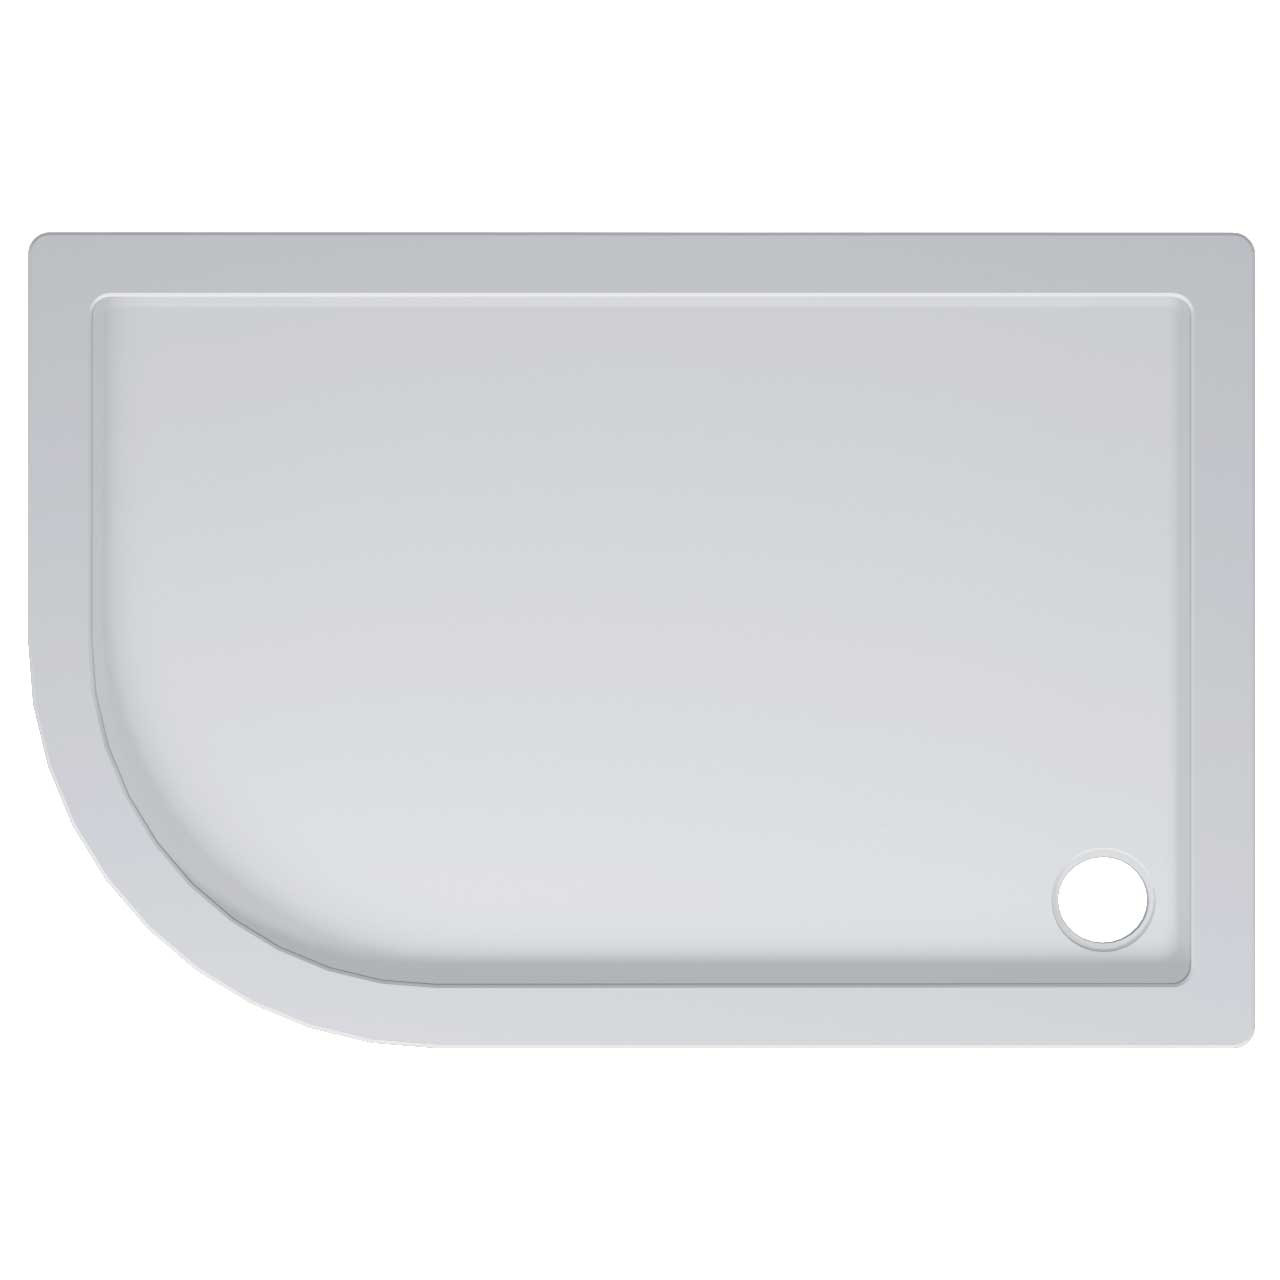 40mm Pearlstone 1200 x 800 Left Hand Offset Quadrant Shower Tray & Plinth Top View